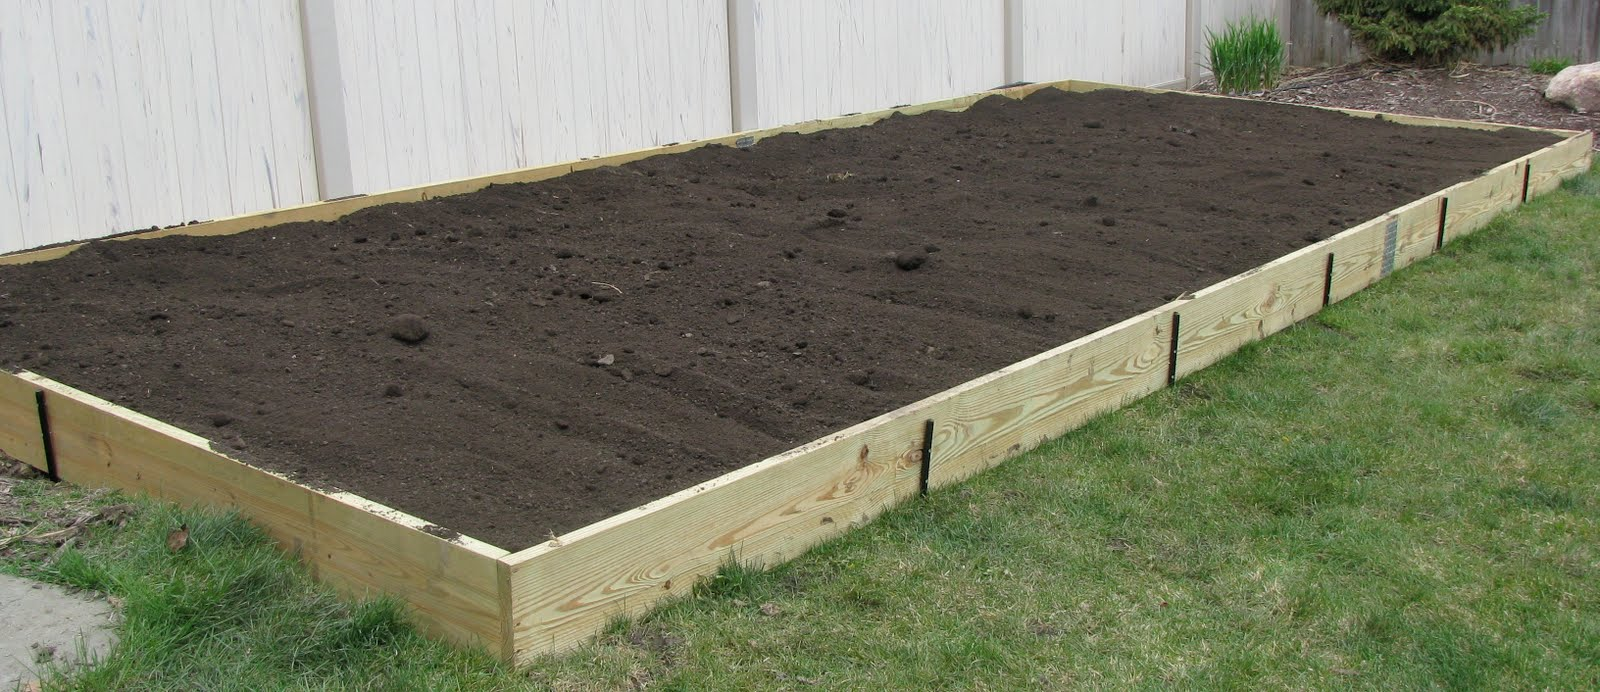 Building a Raised Garden Box 1600 x 692